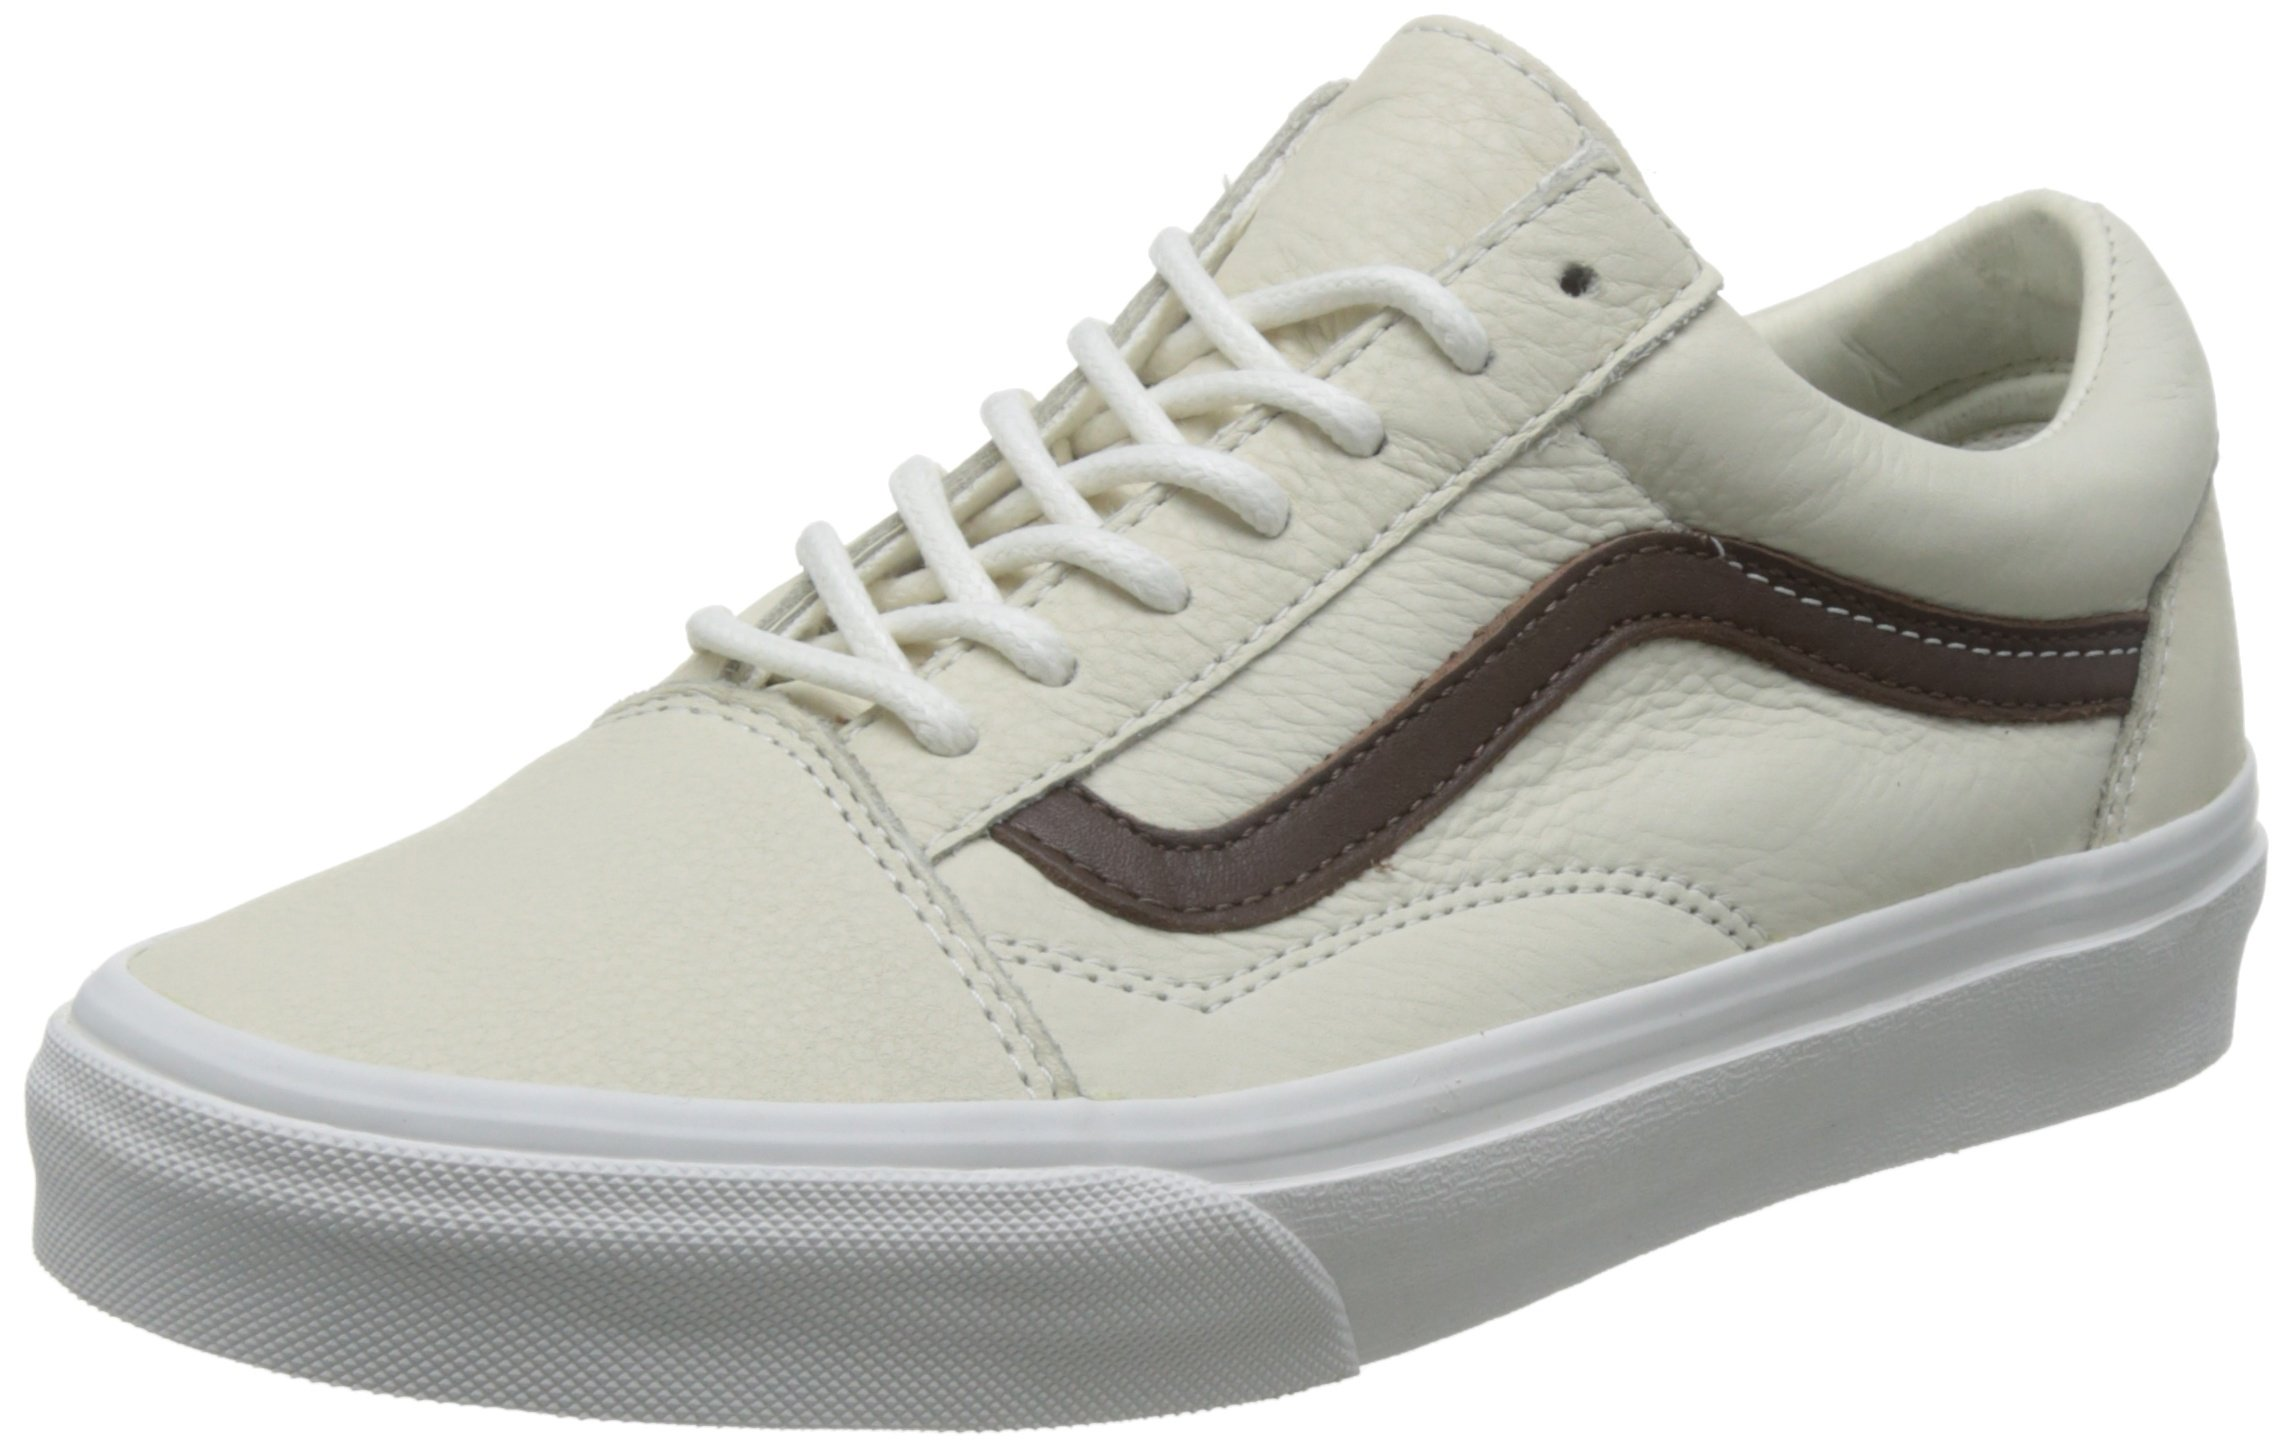 95a0534dcc Galleon - Vans Old Skool Leather Blanc De Blanc Men s Classic Skate Shoes  Size 8